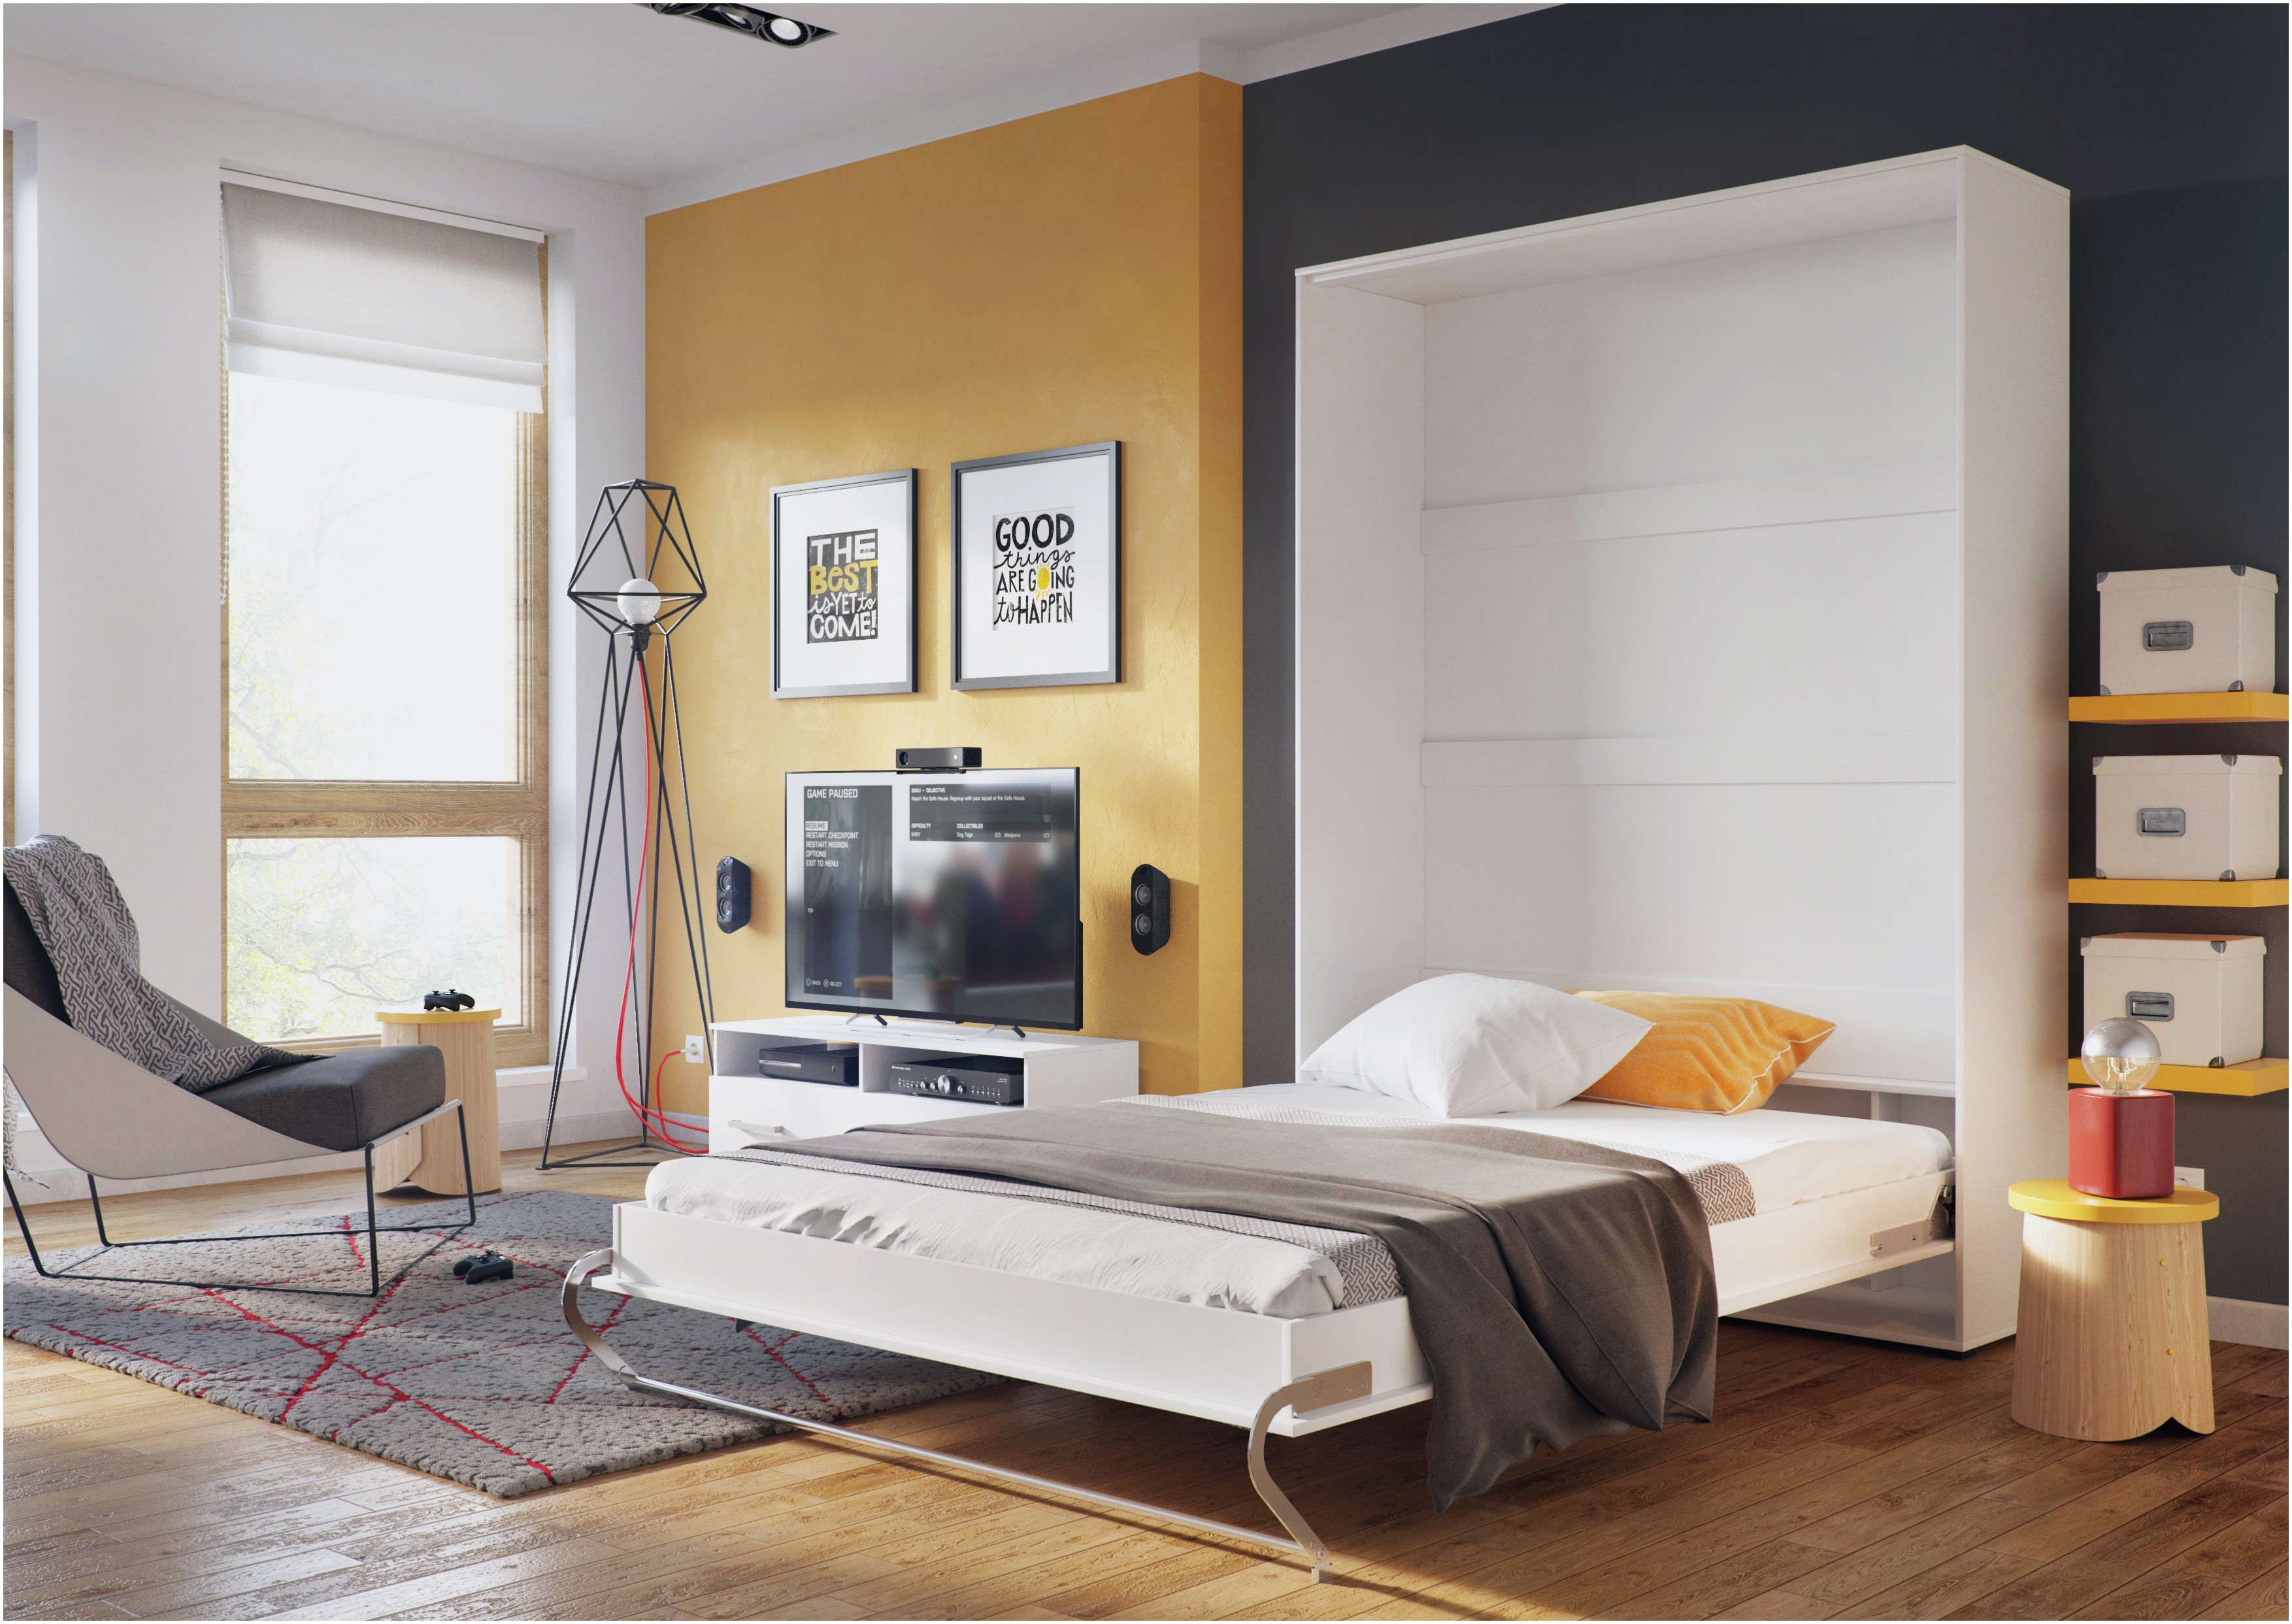 Lit Armoire Pas Cher Lit Armoire Pas Cher Armoire Lit Escamotable Achat Vente Pas Cher Achat Armoire Lit Escamotable A Prix Disco Beds For Small Rooms Cool Beds Small Rooms